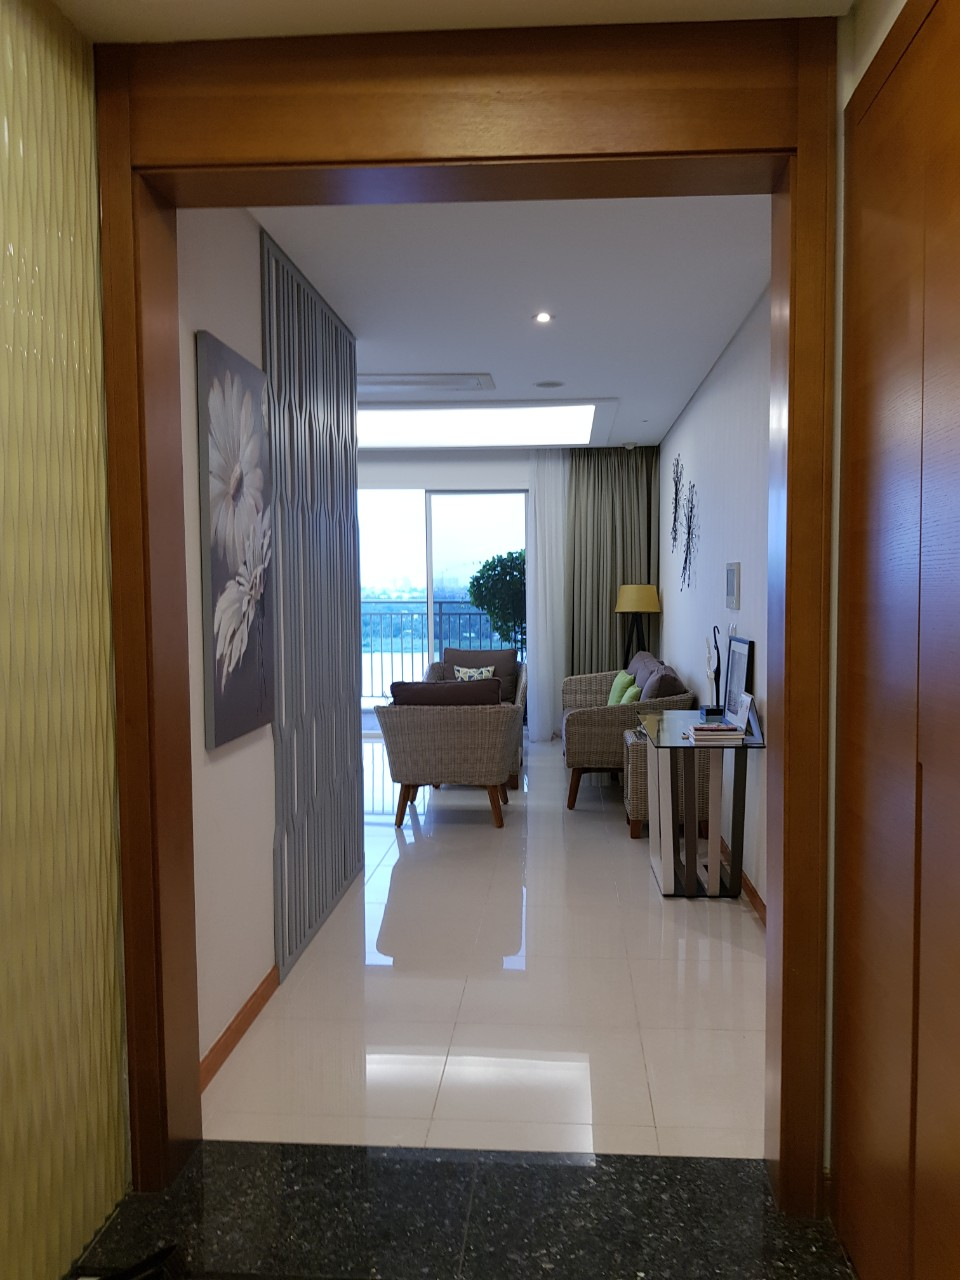 Xi Apartment Nice Furniture Good View in Thao Dien D206096 (14)